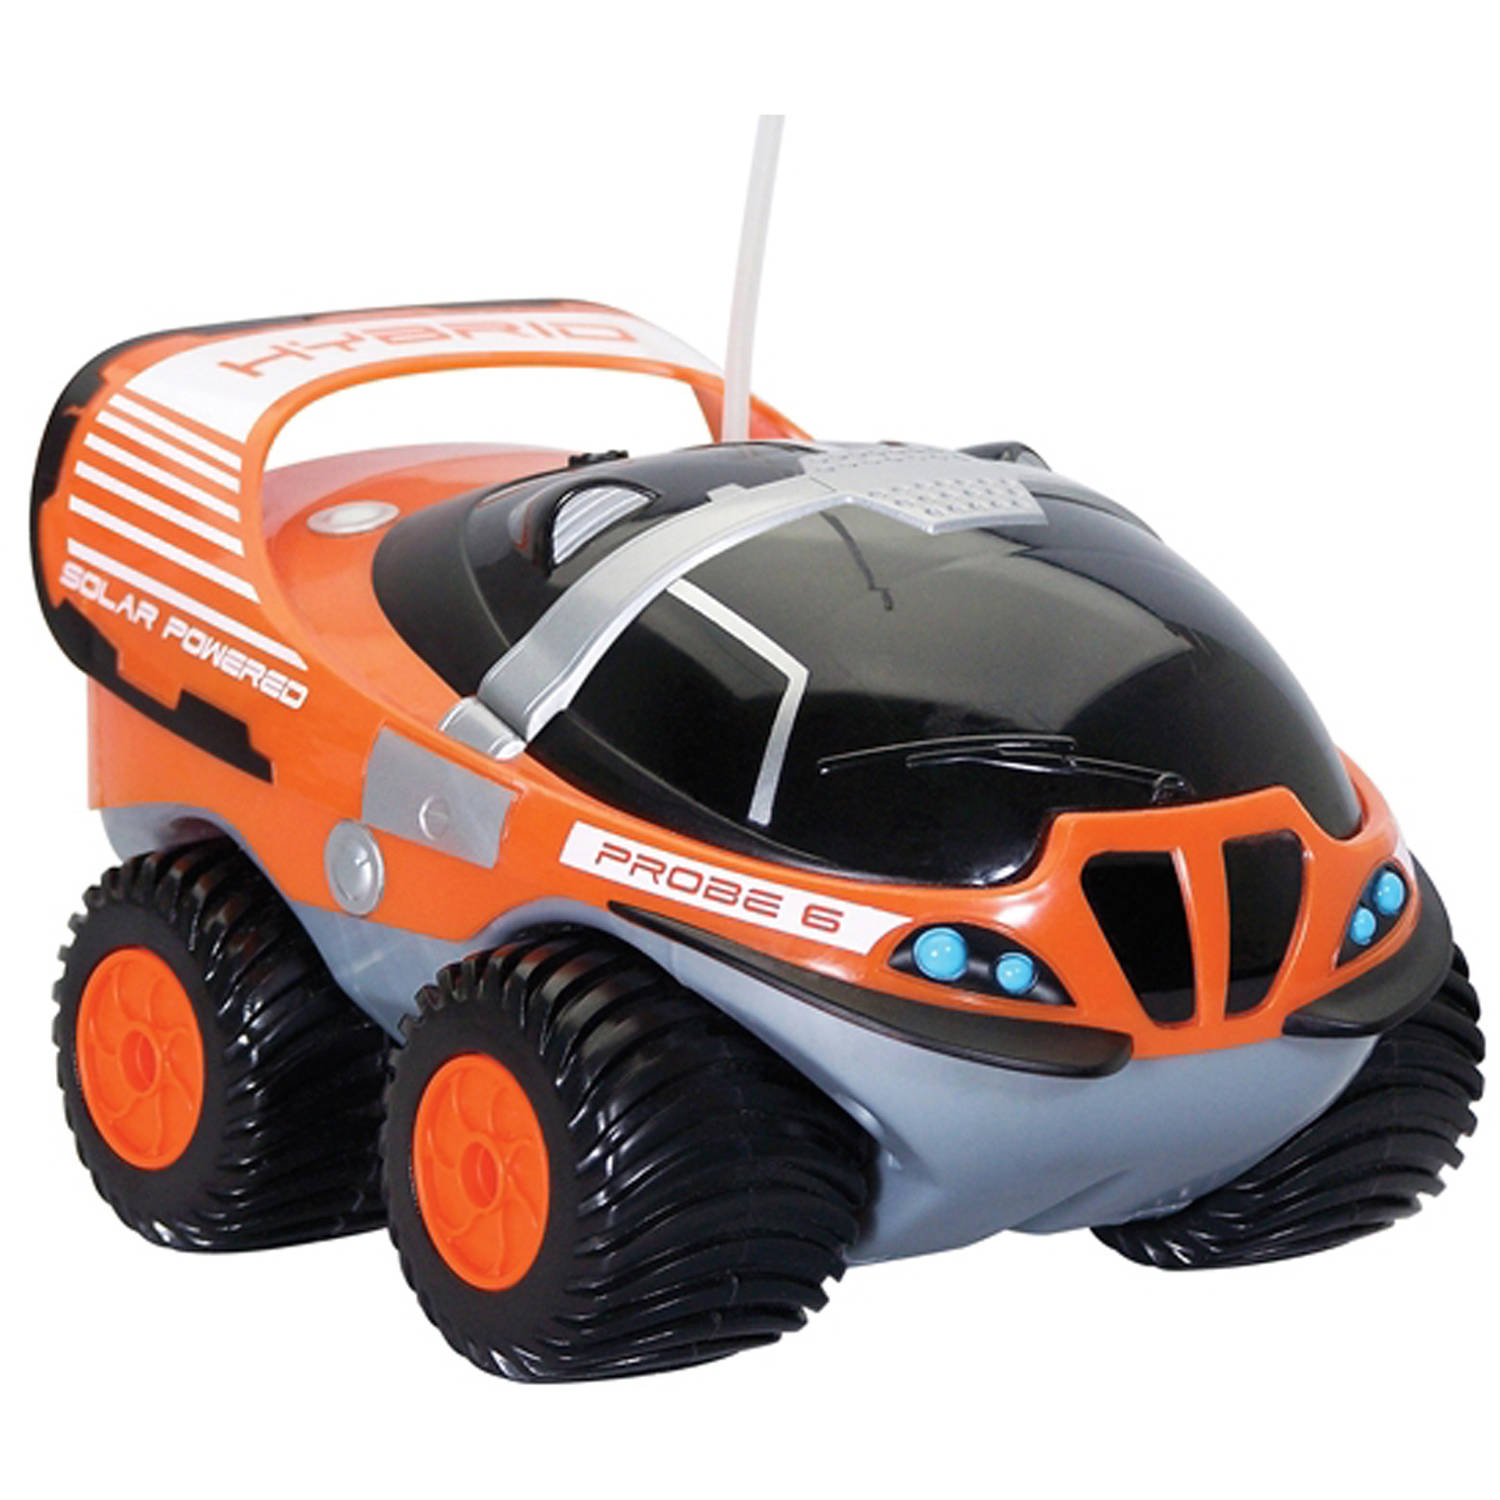 Morphibians Explorer Remote-Controlled Vehicle, 49 mhz